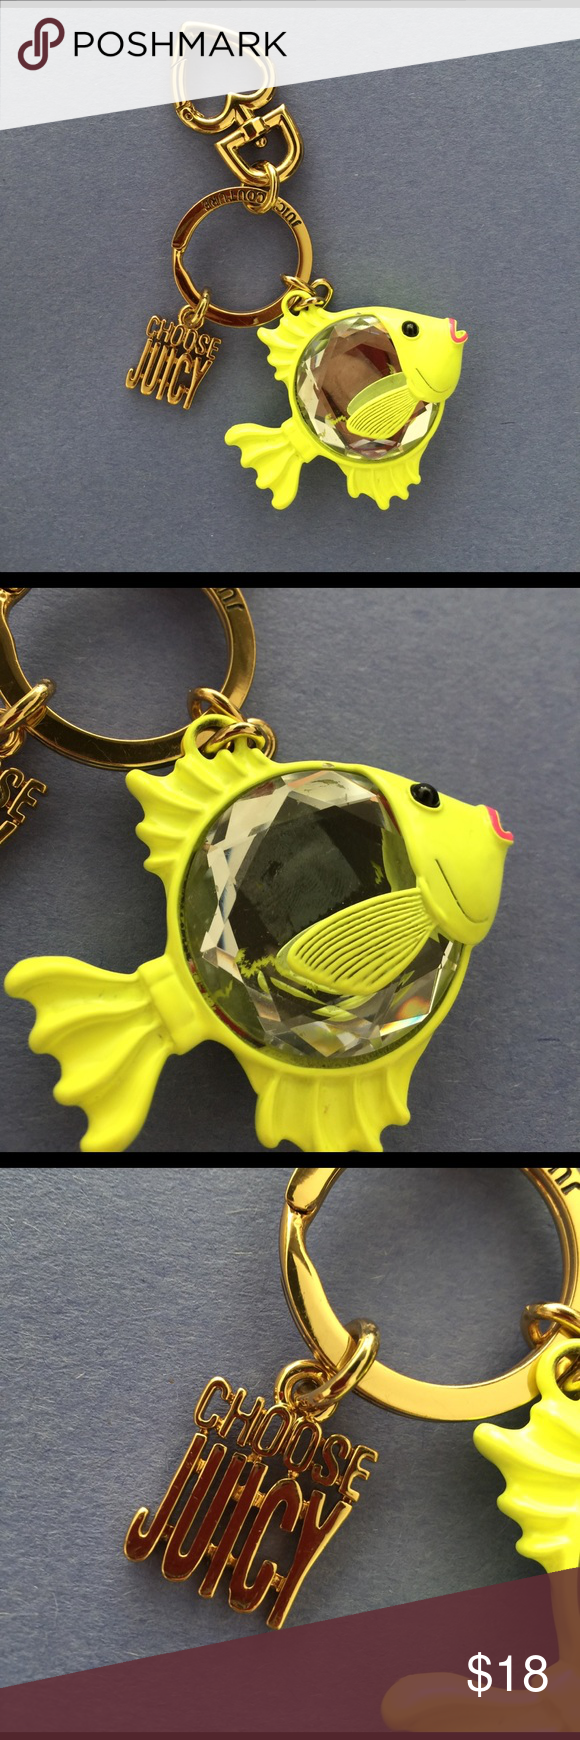 JUICY COUTURE BAG CHARM Bag charm Juicy Couture Accessories Key & Card Holders